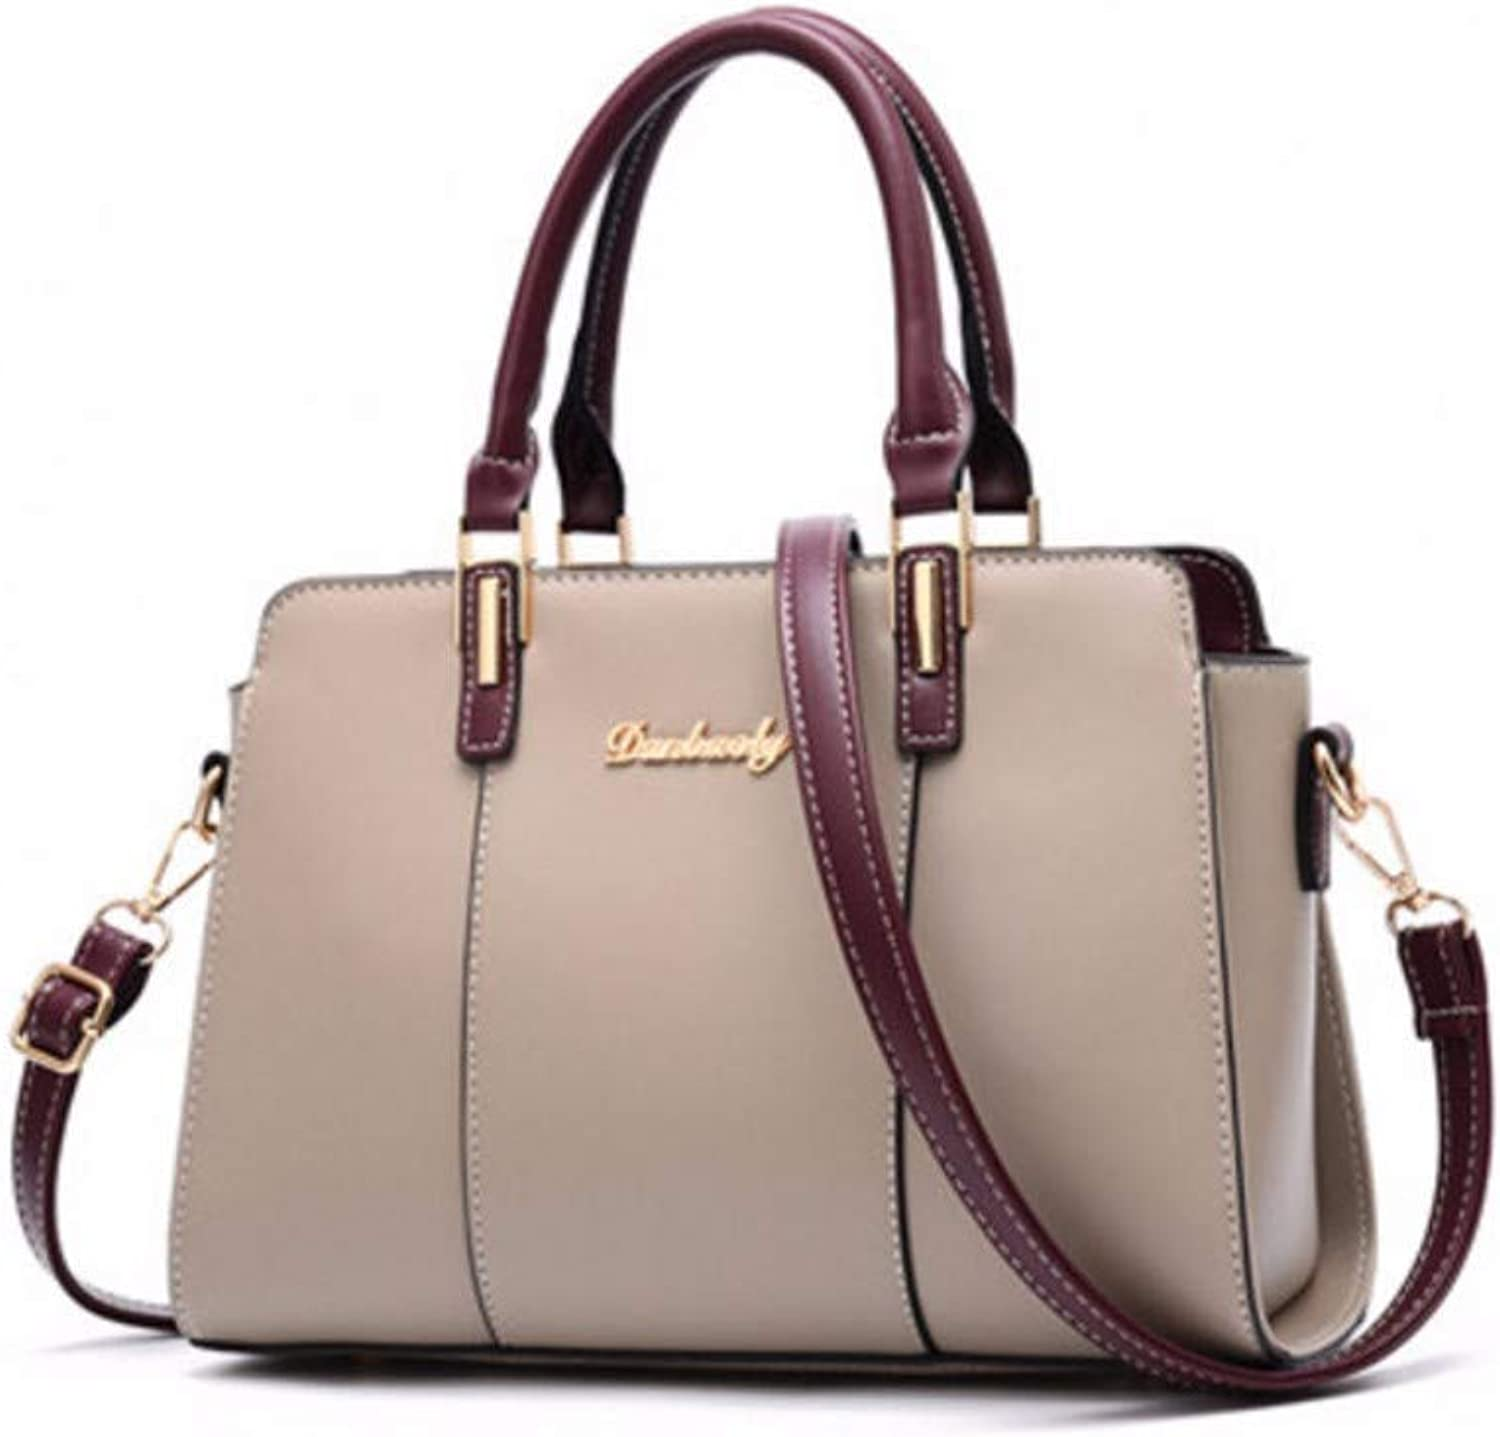 JQSM Luxury Handbags 2019 Elegant Bag Women Designer Women Messenger Shoulder Bag for Women 2019